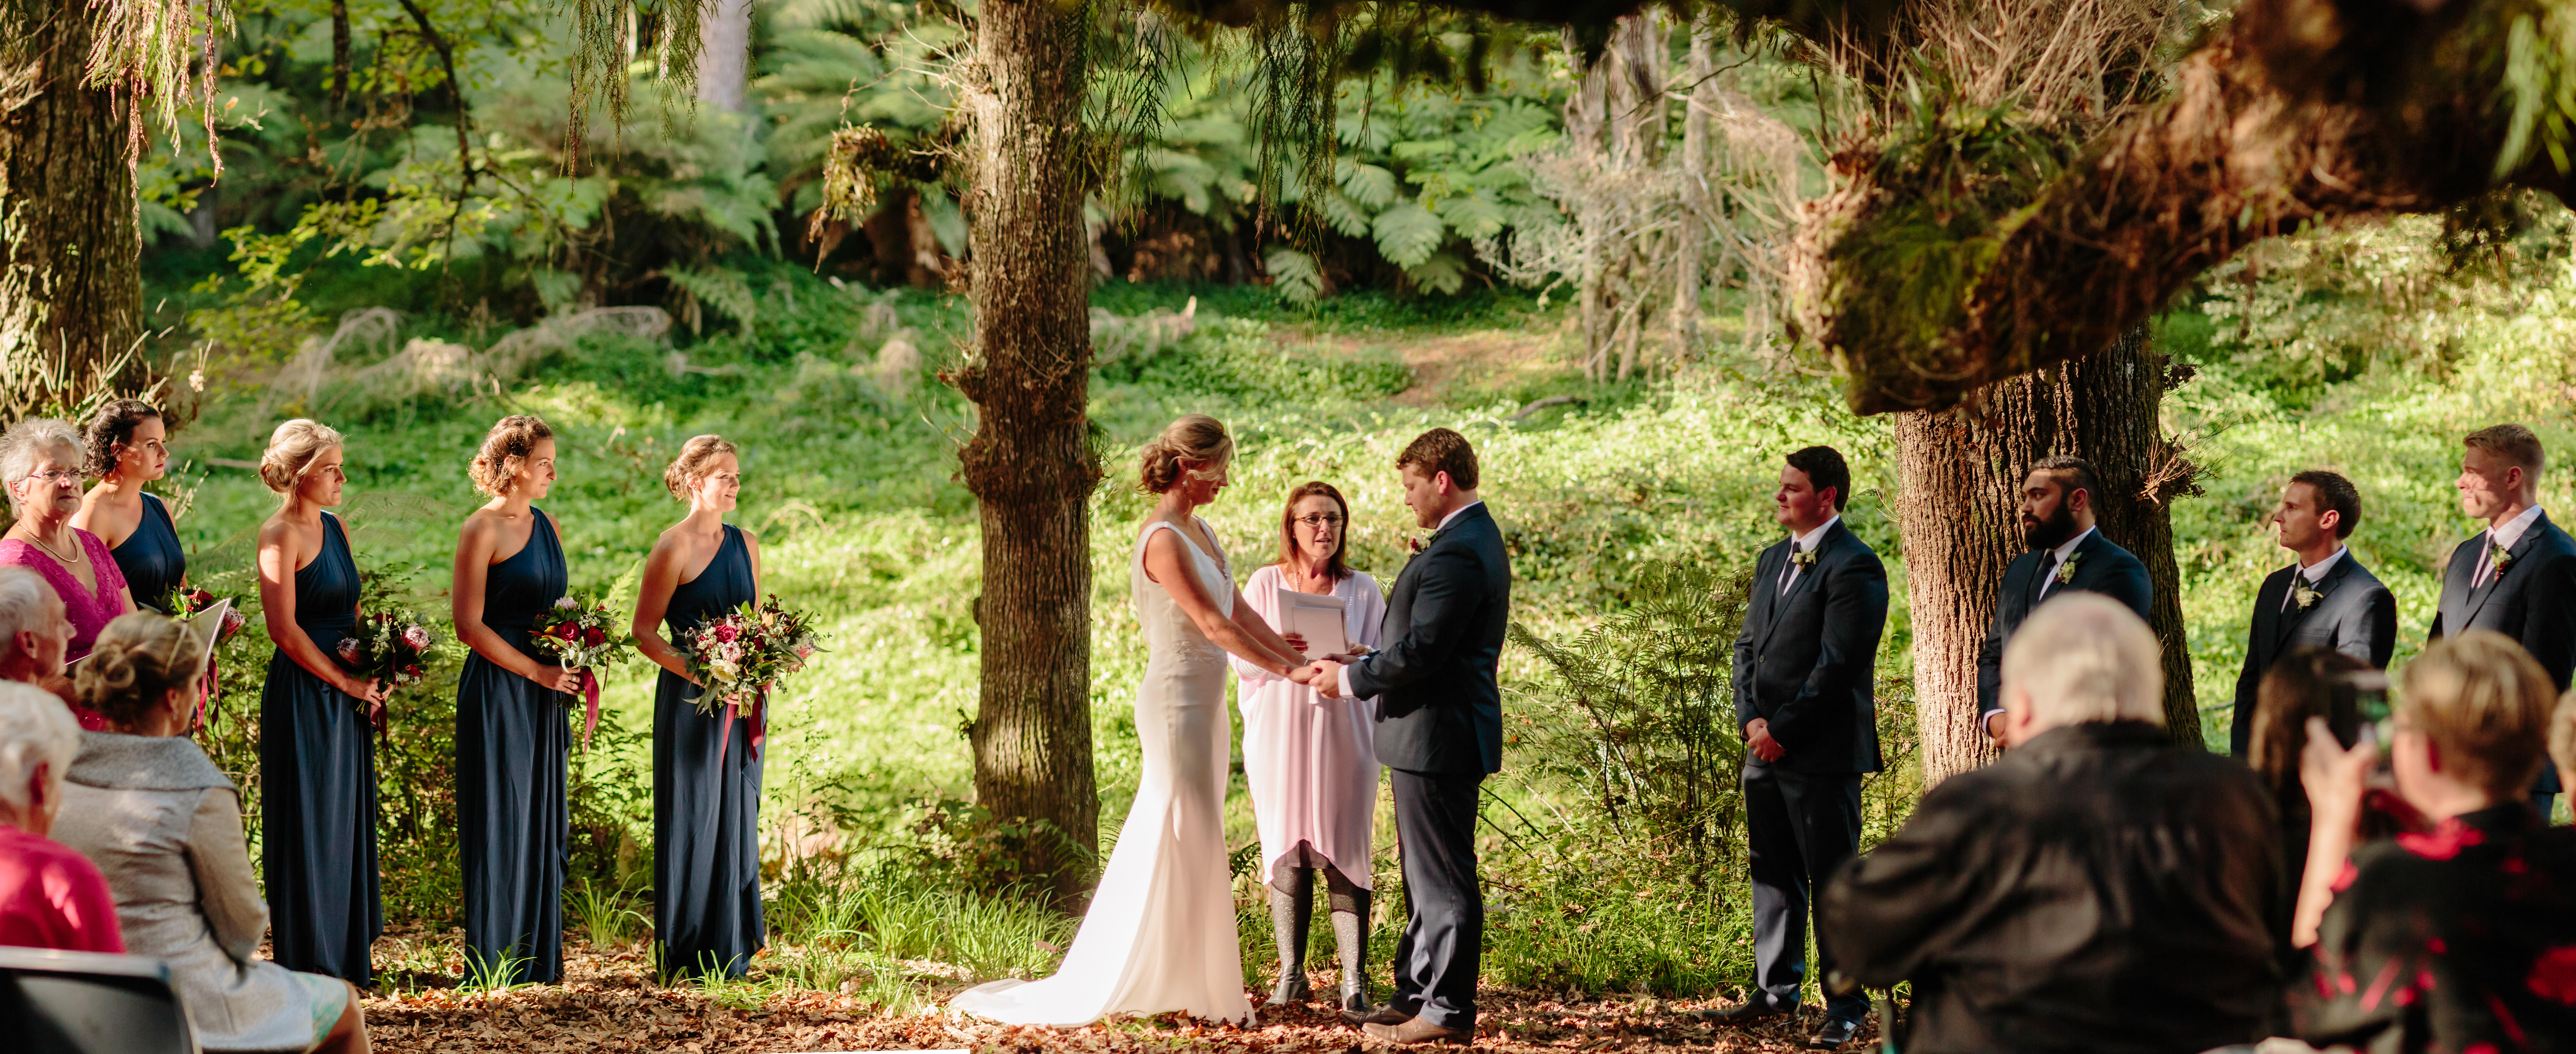 jo-mike-wedding-the-official-photographers_top_7661-pano